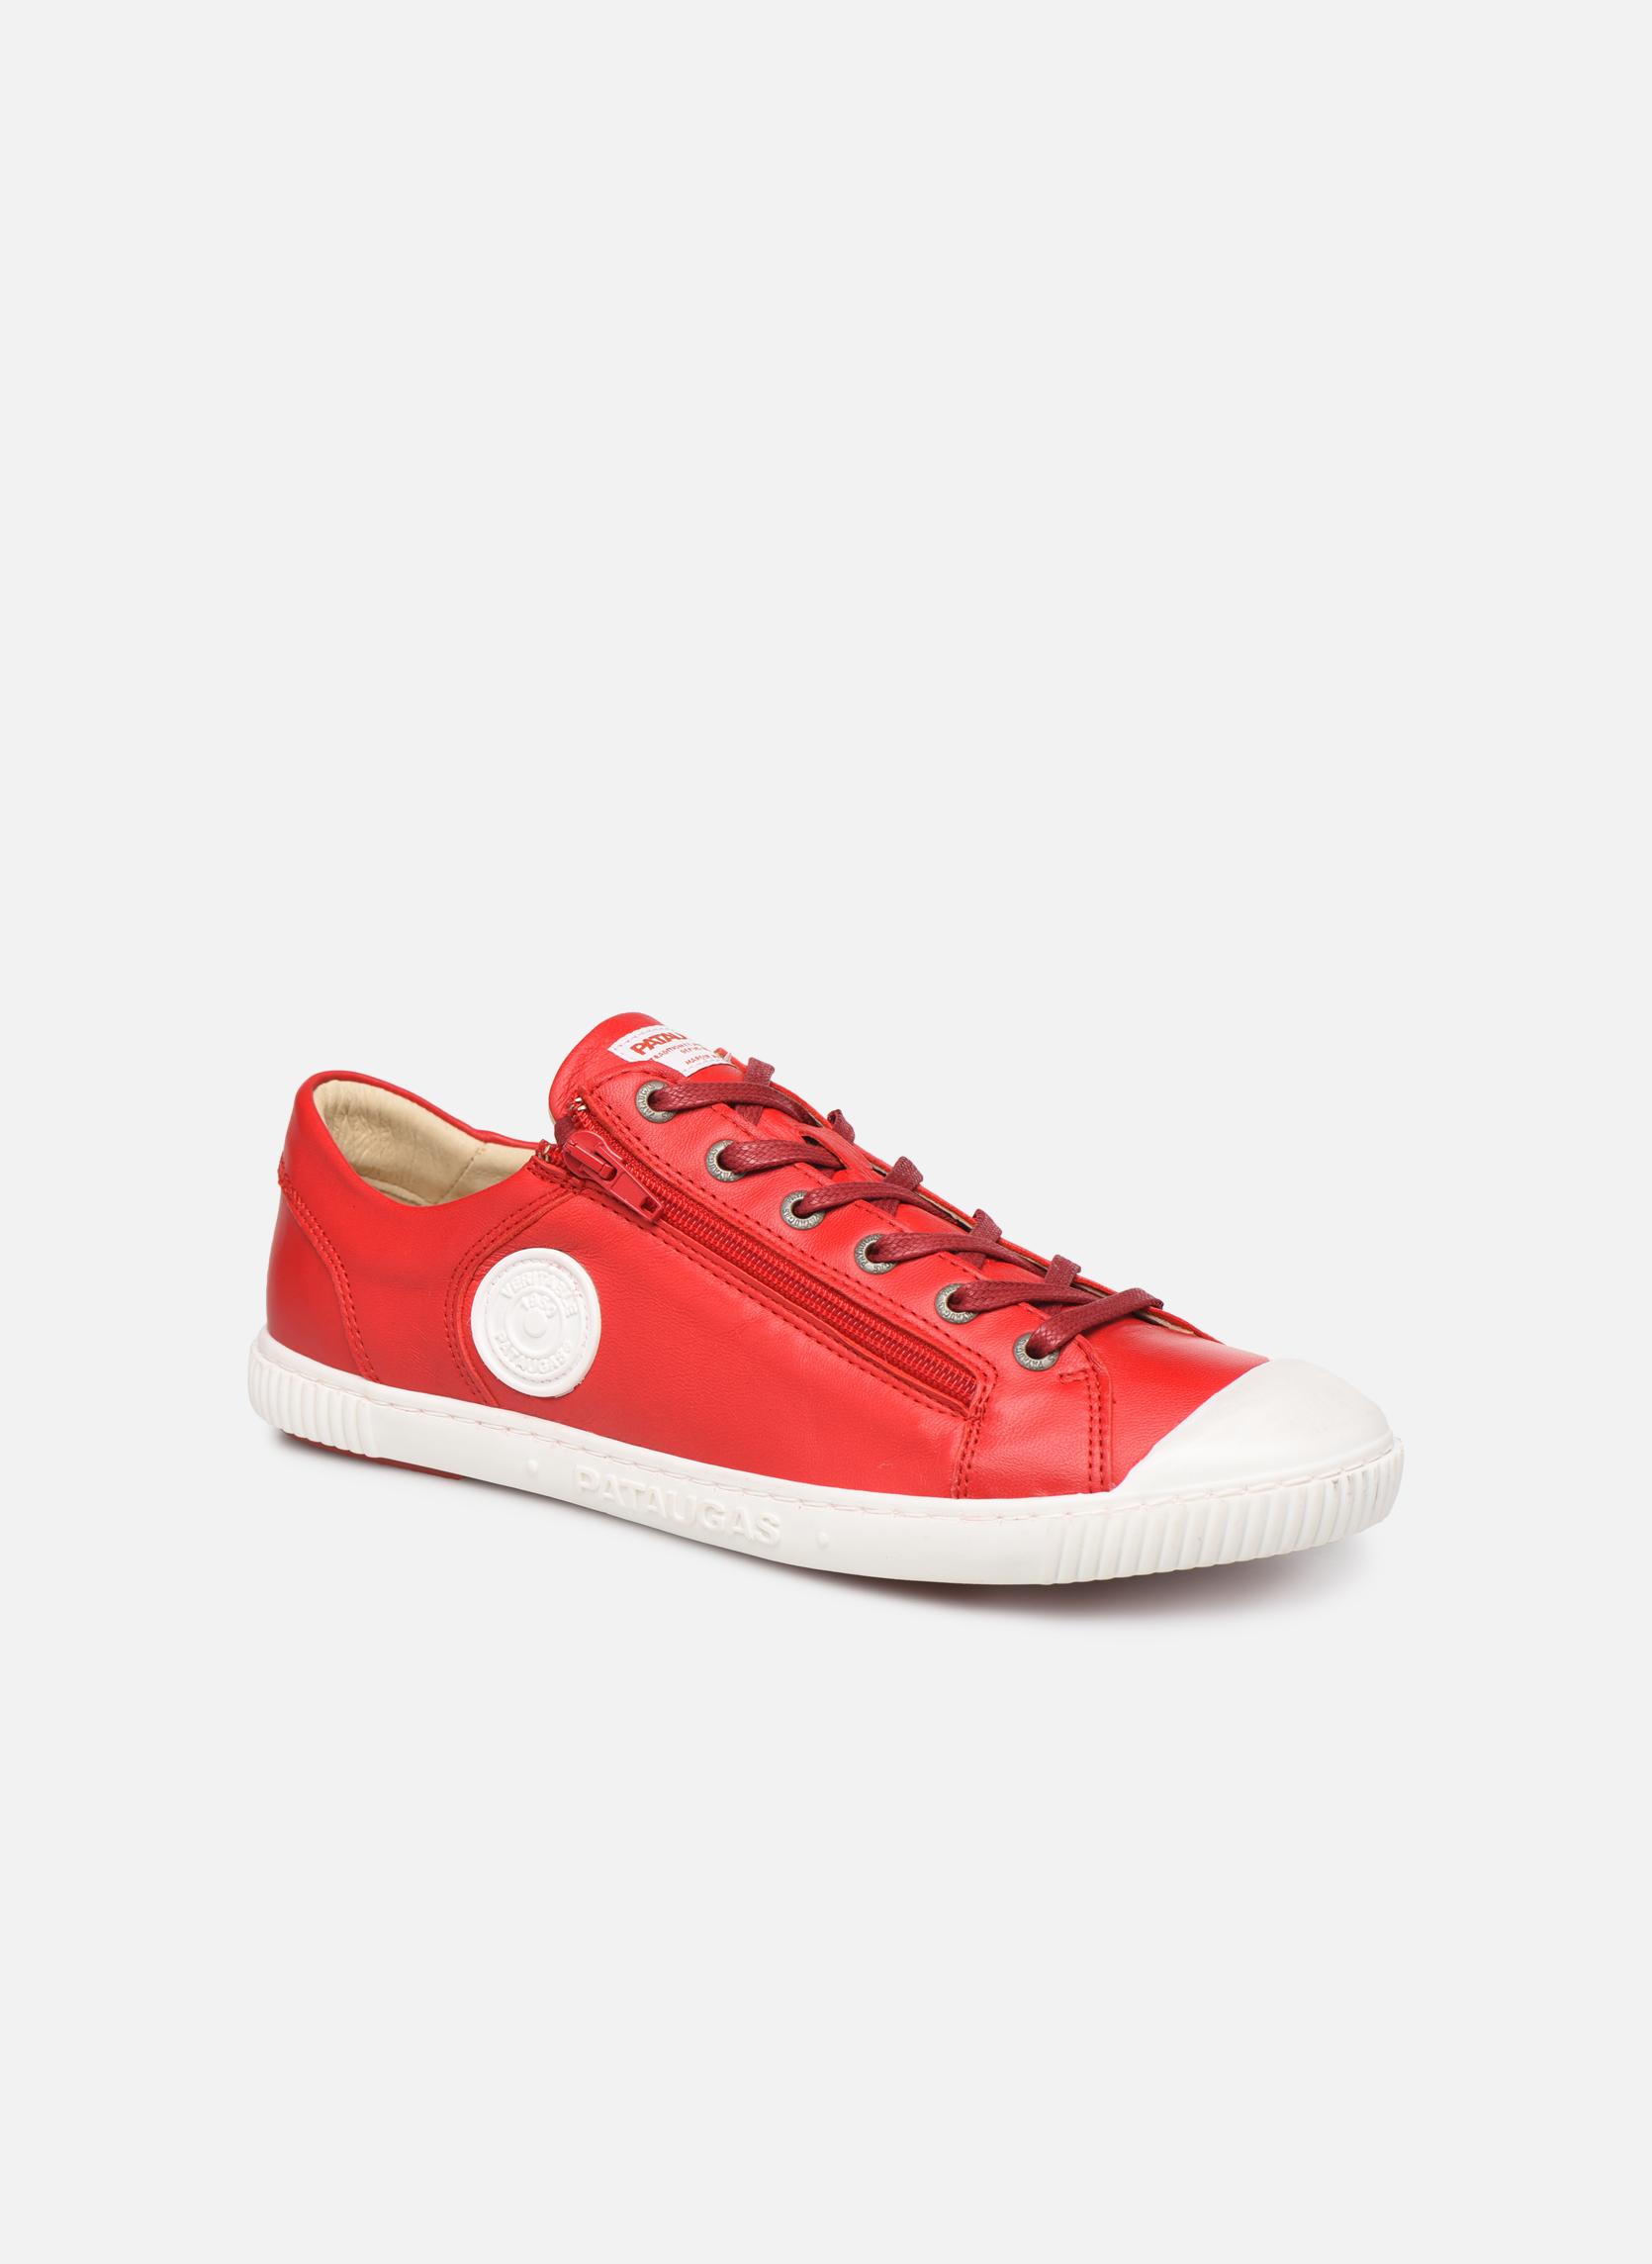 Sneakers Pataugas Rood